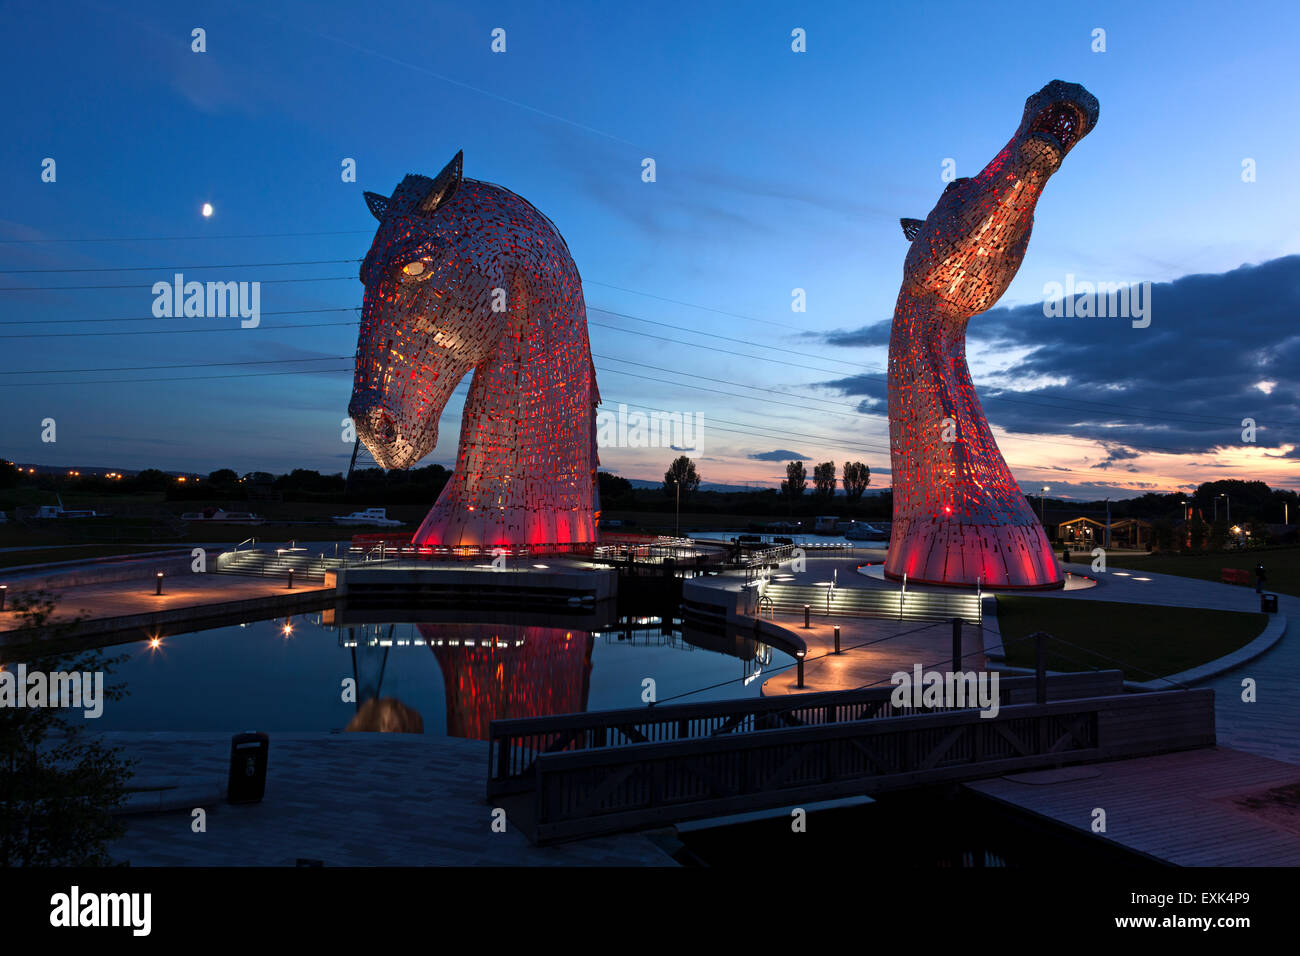 the-kelpies-sculpture-illuminated-at-night-falkirk-stirling-EXK4P9.jpg